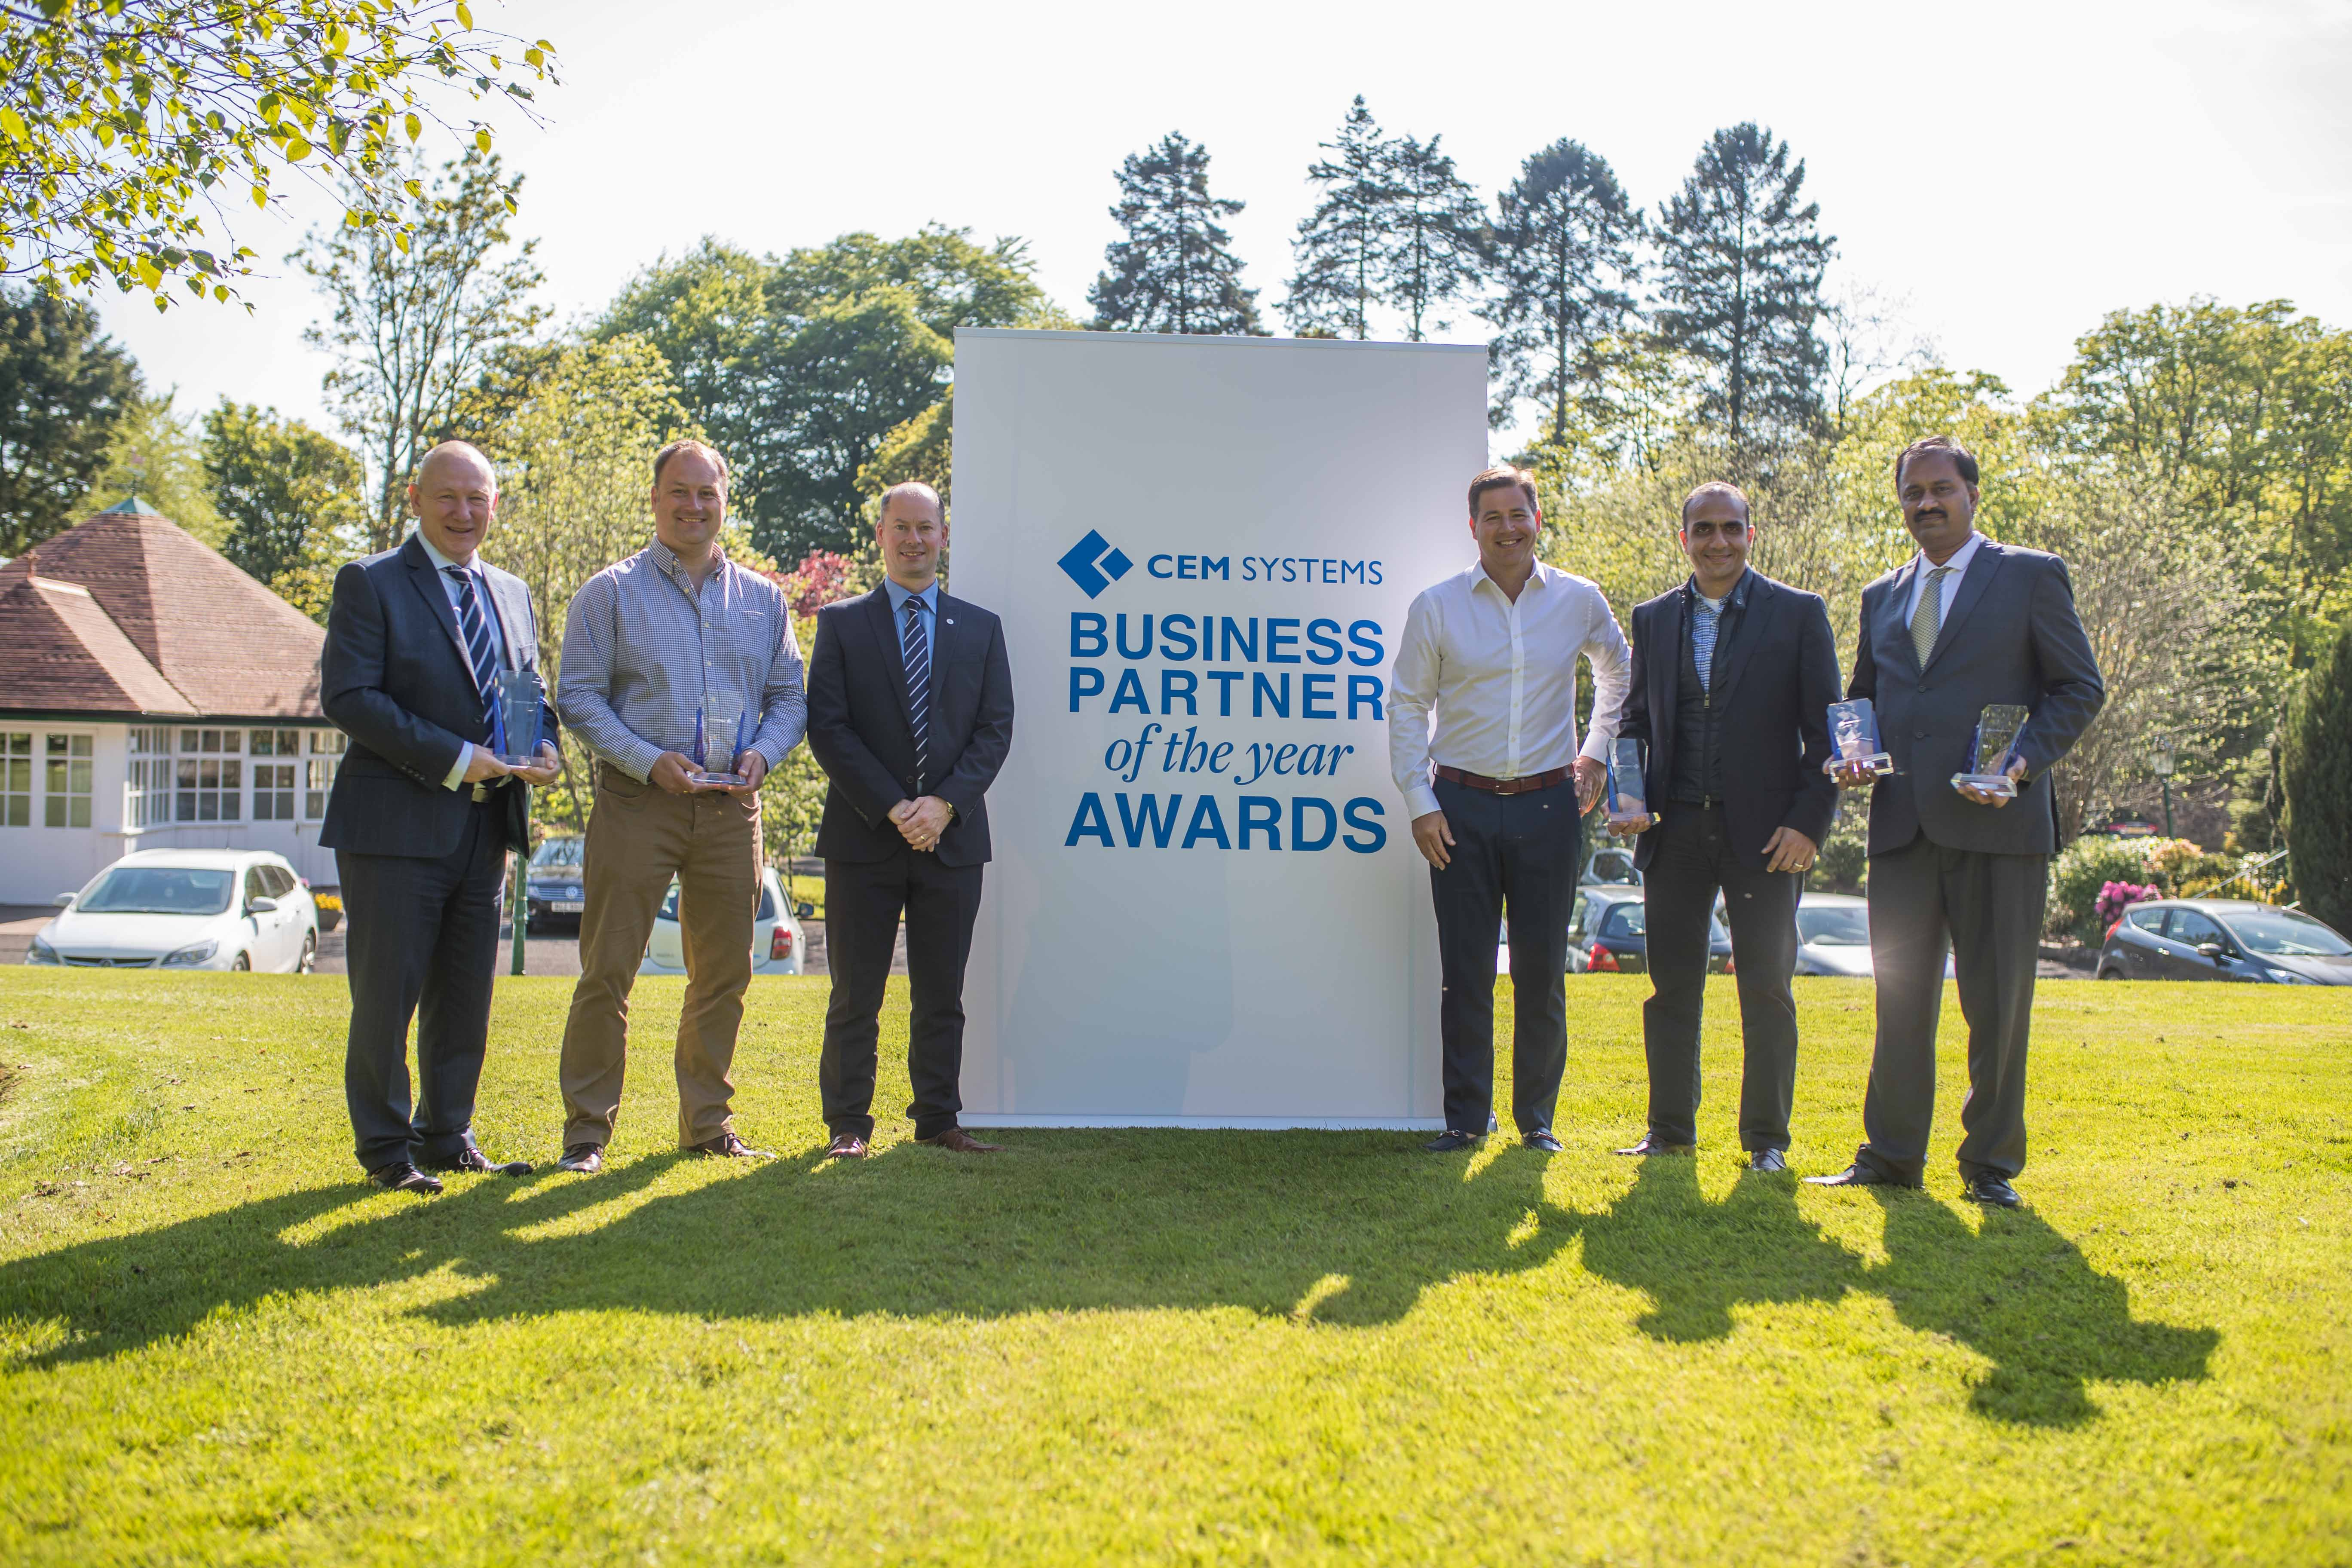 CEM Systems EMEA Business Partners of the Year award winners 2018